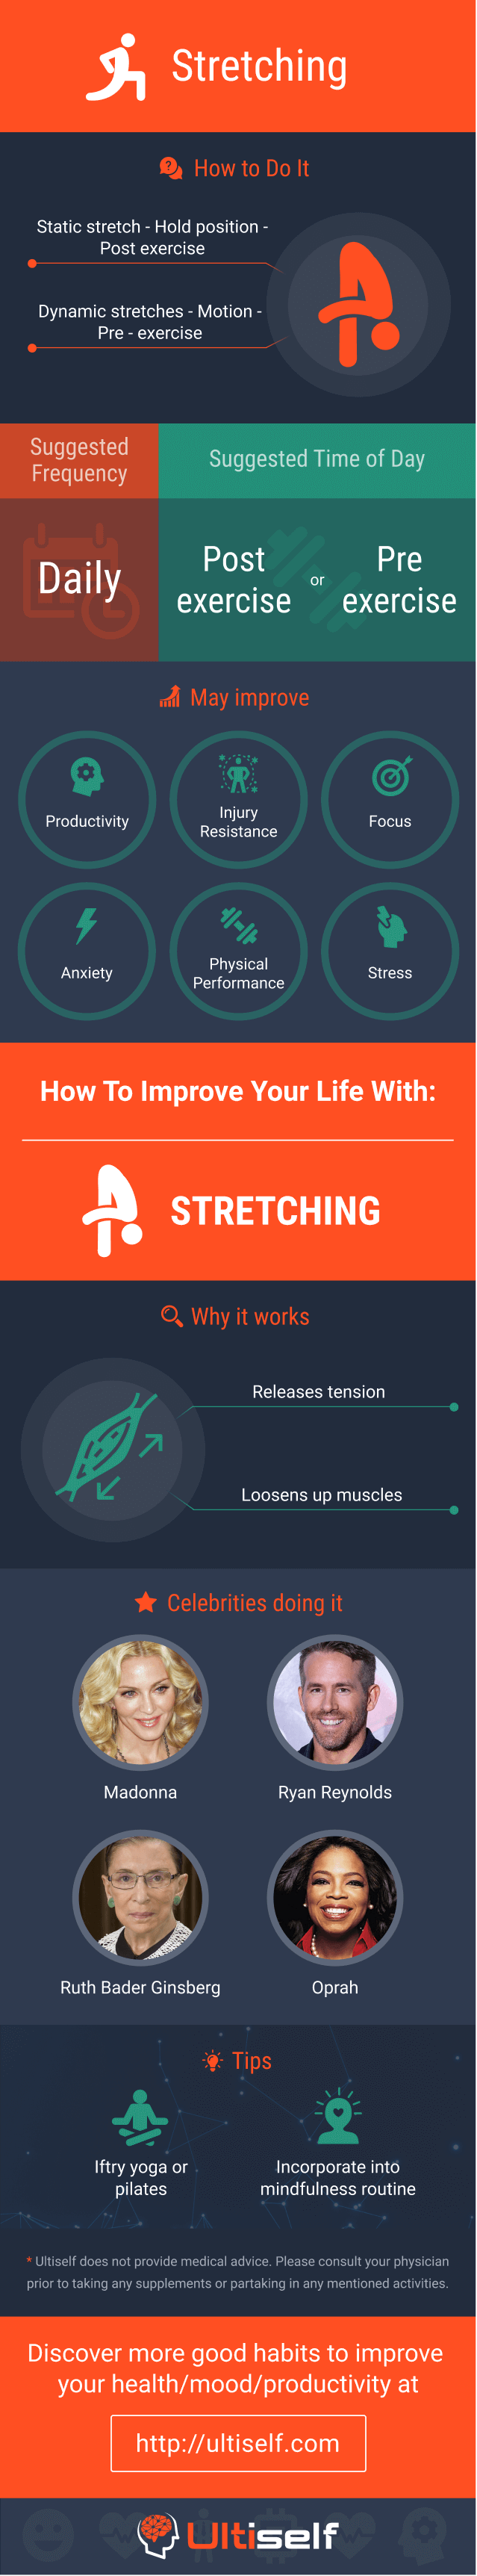 Stretching infographic